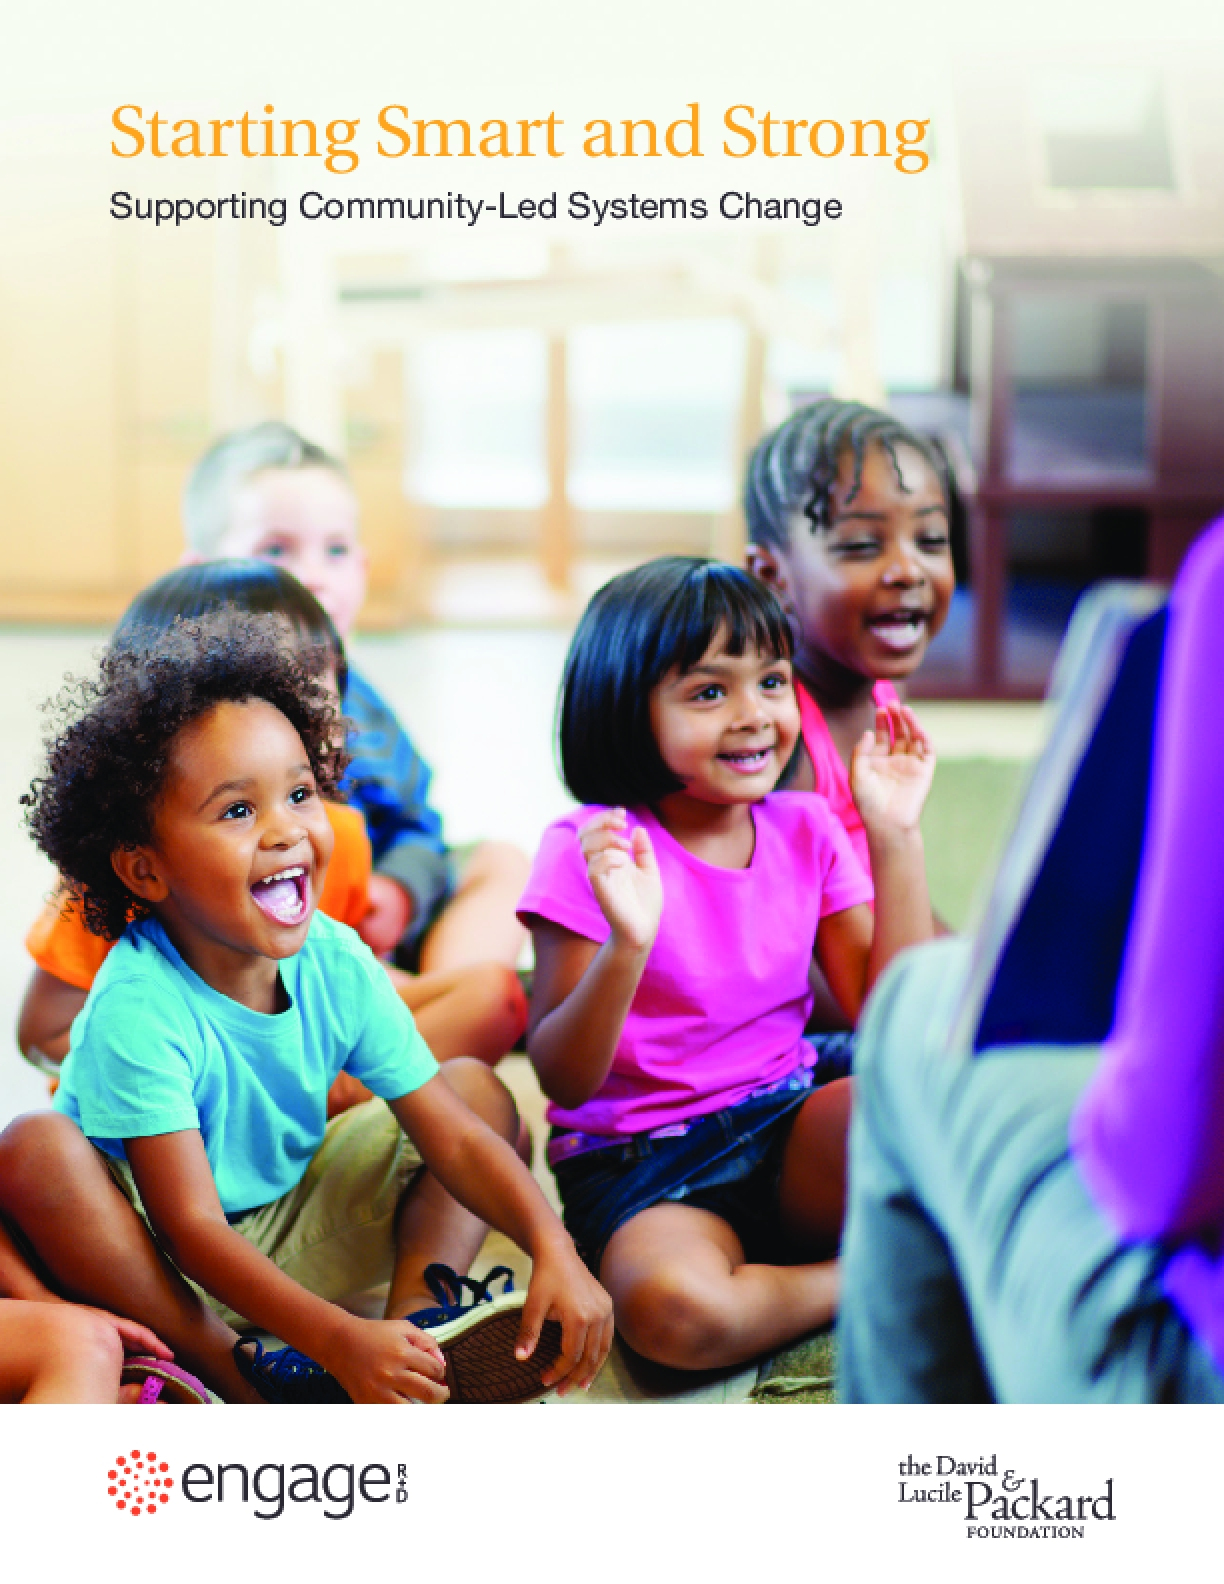 Starting Smart and Strong: Supporting Community-Led Systems Change